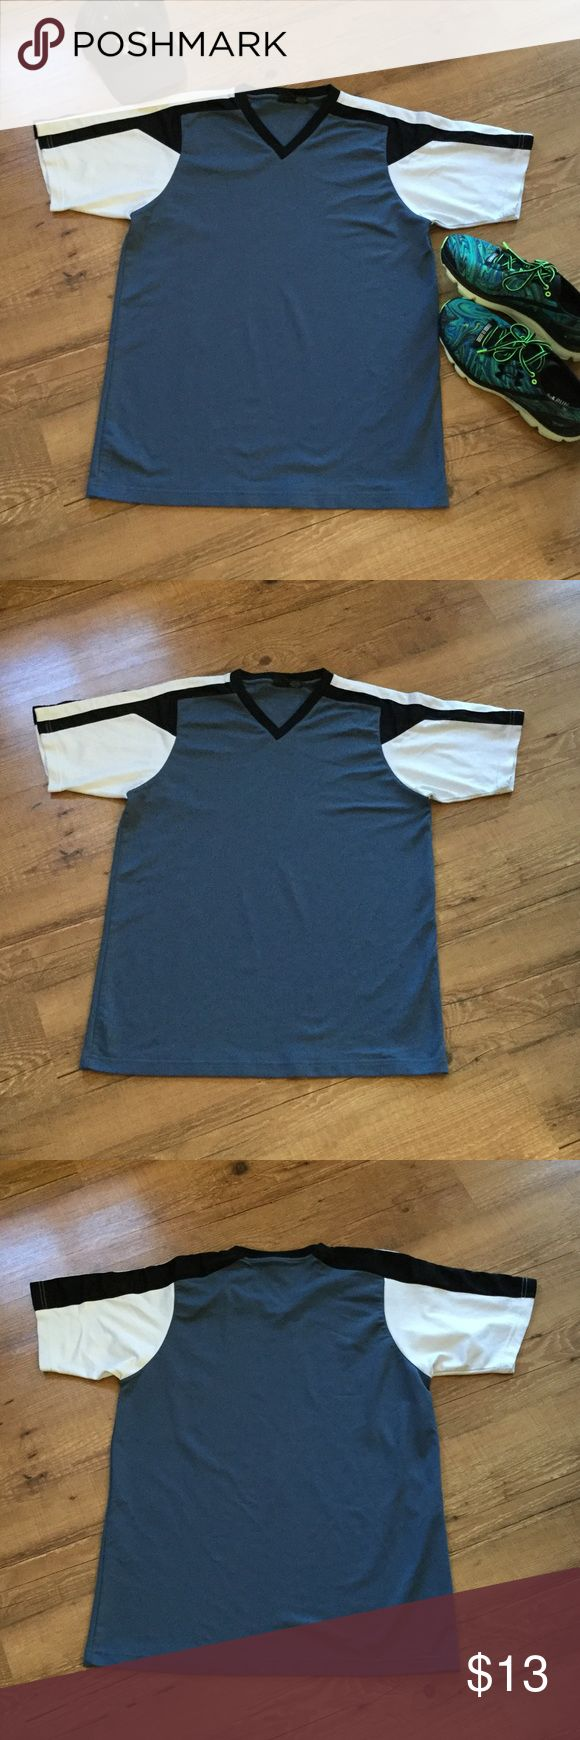 """Men's blue, black, white v-neck Slate blue color with black and white sleeves. It is that """"tech"""" type texture like on golf/sport shirts.  100% polyester. Please ask any necessary questions prior to purchasing. No trades. Save even more with a bundle discount! Shirts Tees - Short Sleeve"""